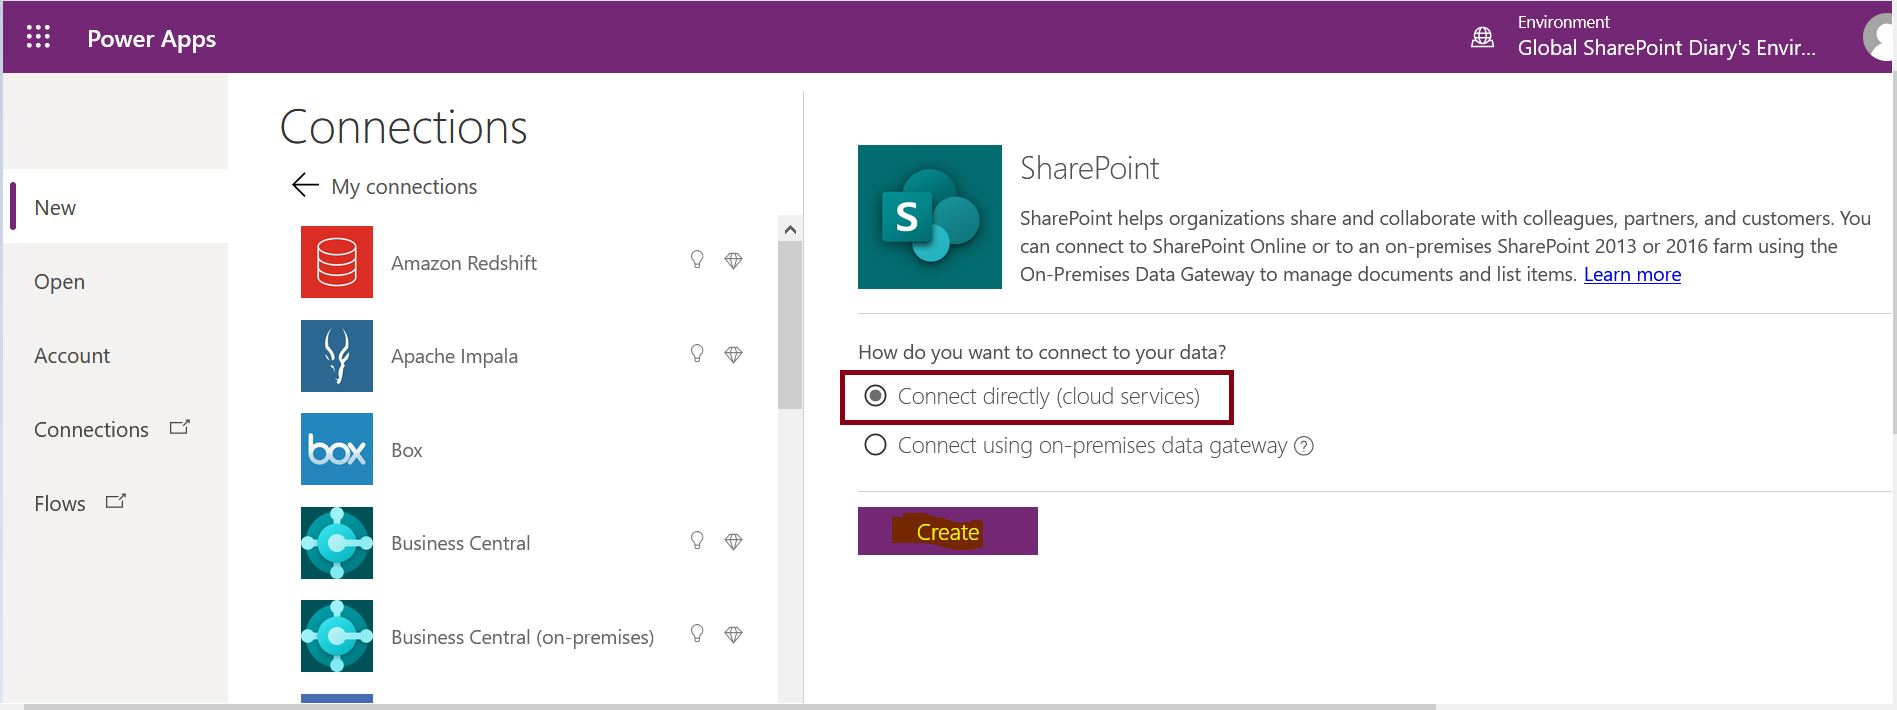 Create SharePoint data connection - Connect directly (cloud services)